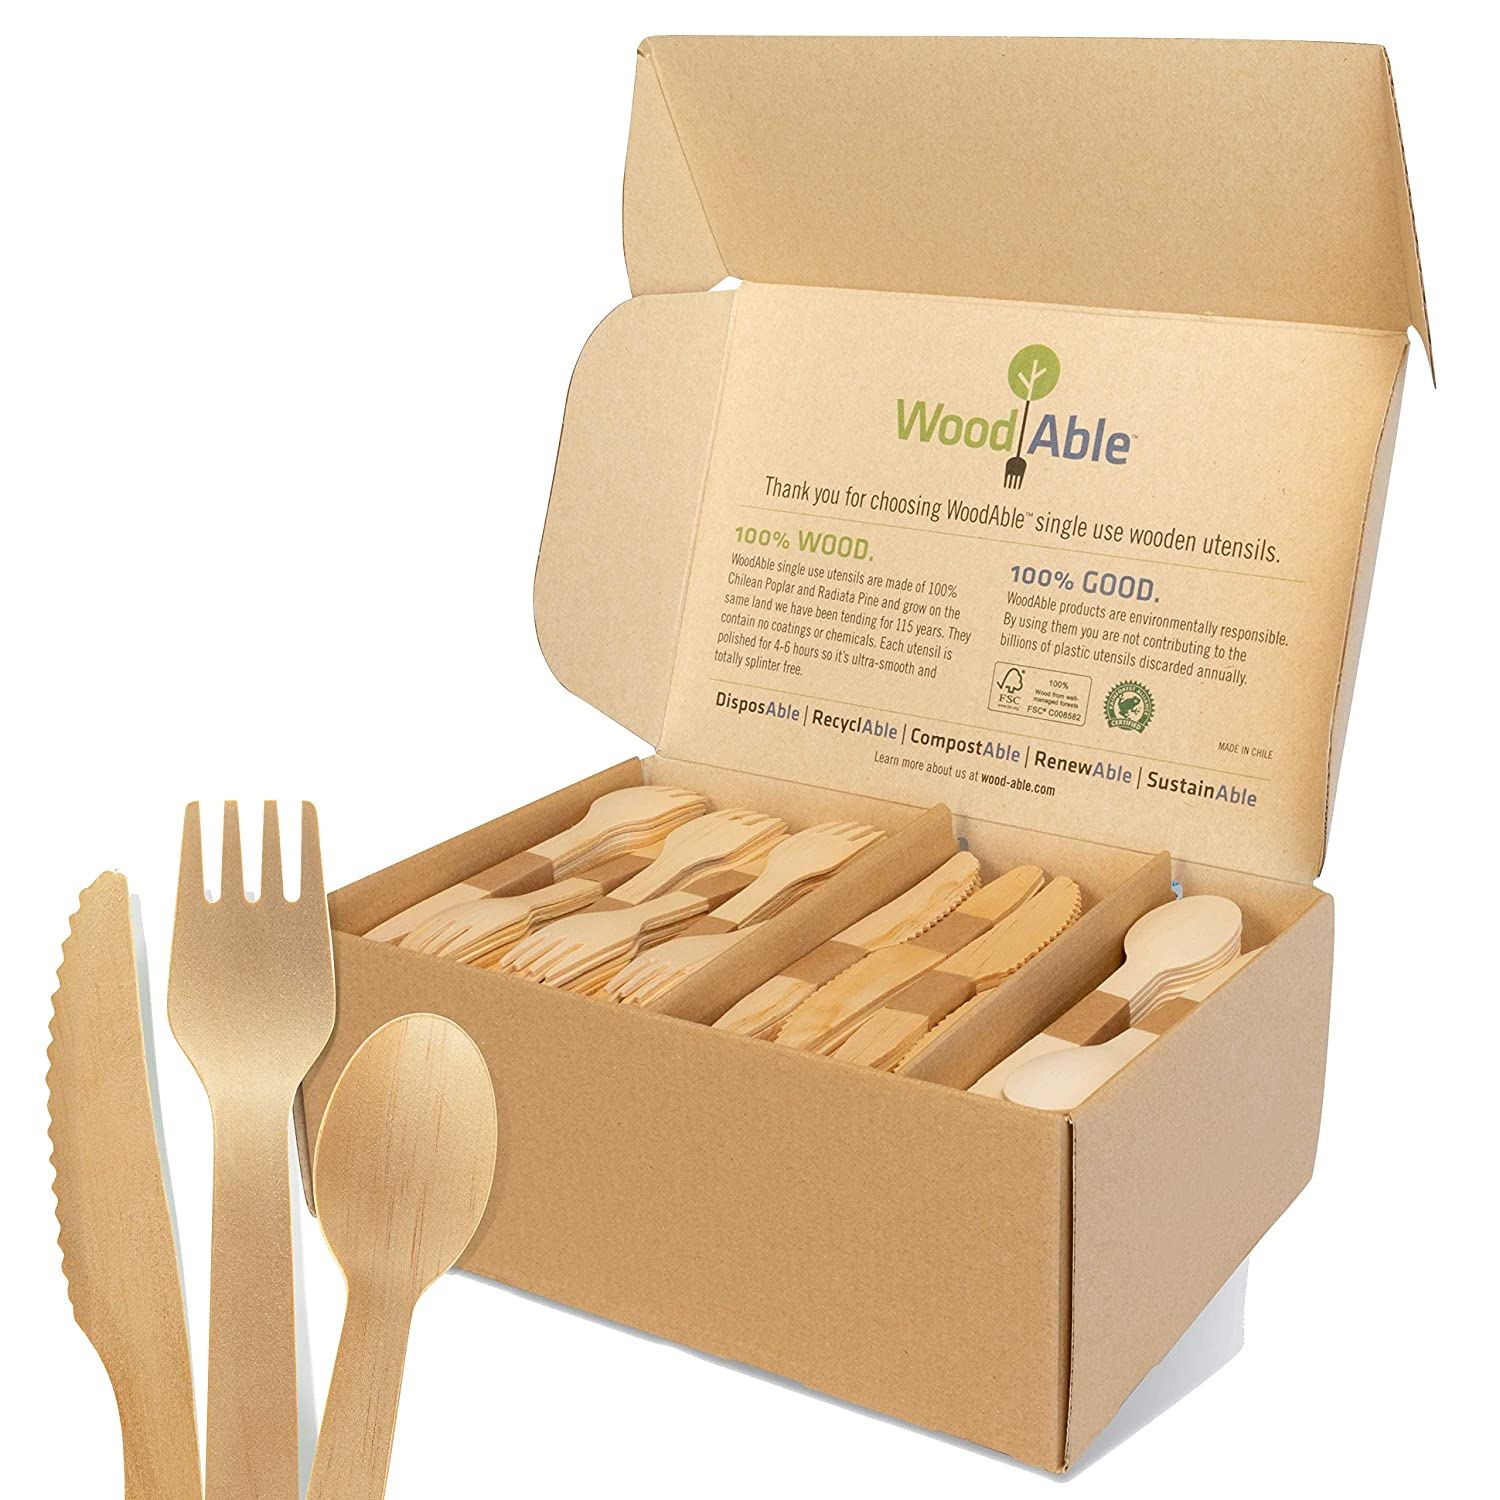 WoodAble - Disposable Wooden Forks, Spoons, Knives Set   Alternative to Plastic Cutlery - FSC Certified - Eco Biodegradable Replacements - 100% Wood - (480 Count - 240 Forks, 160 Knives, 80 Spoons)